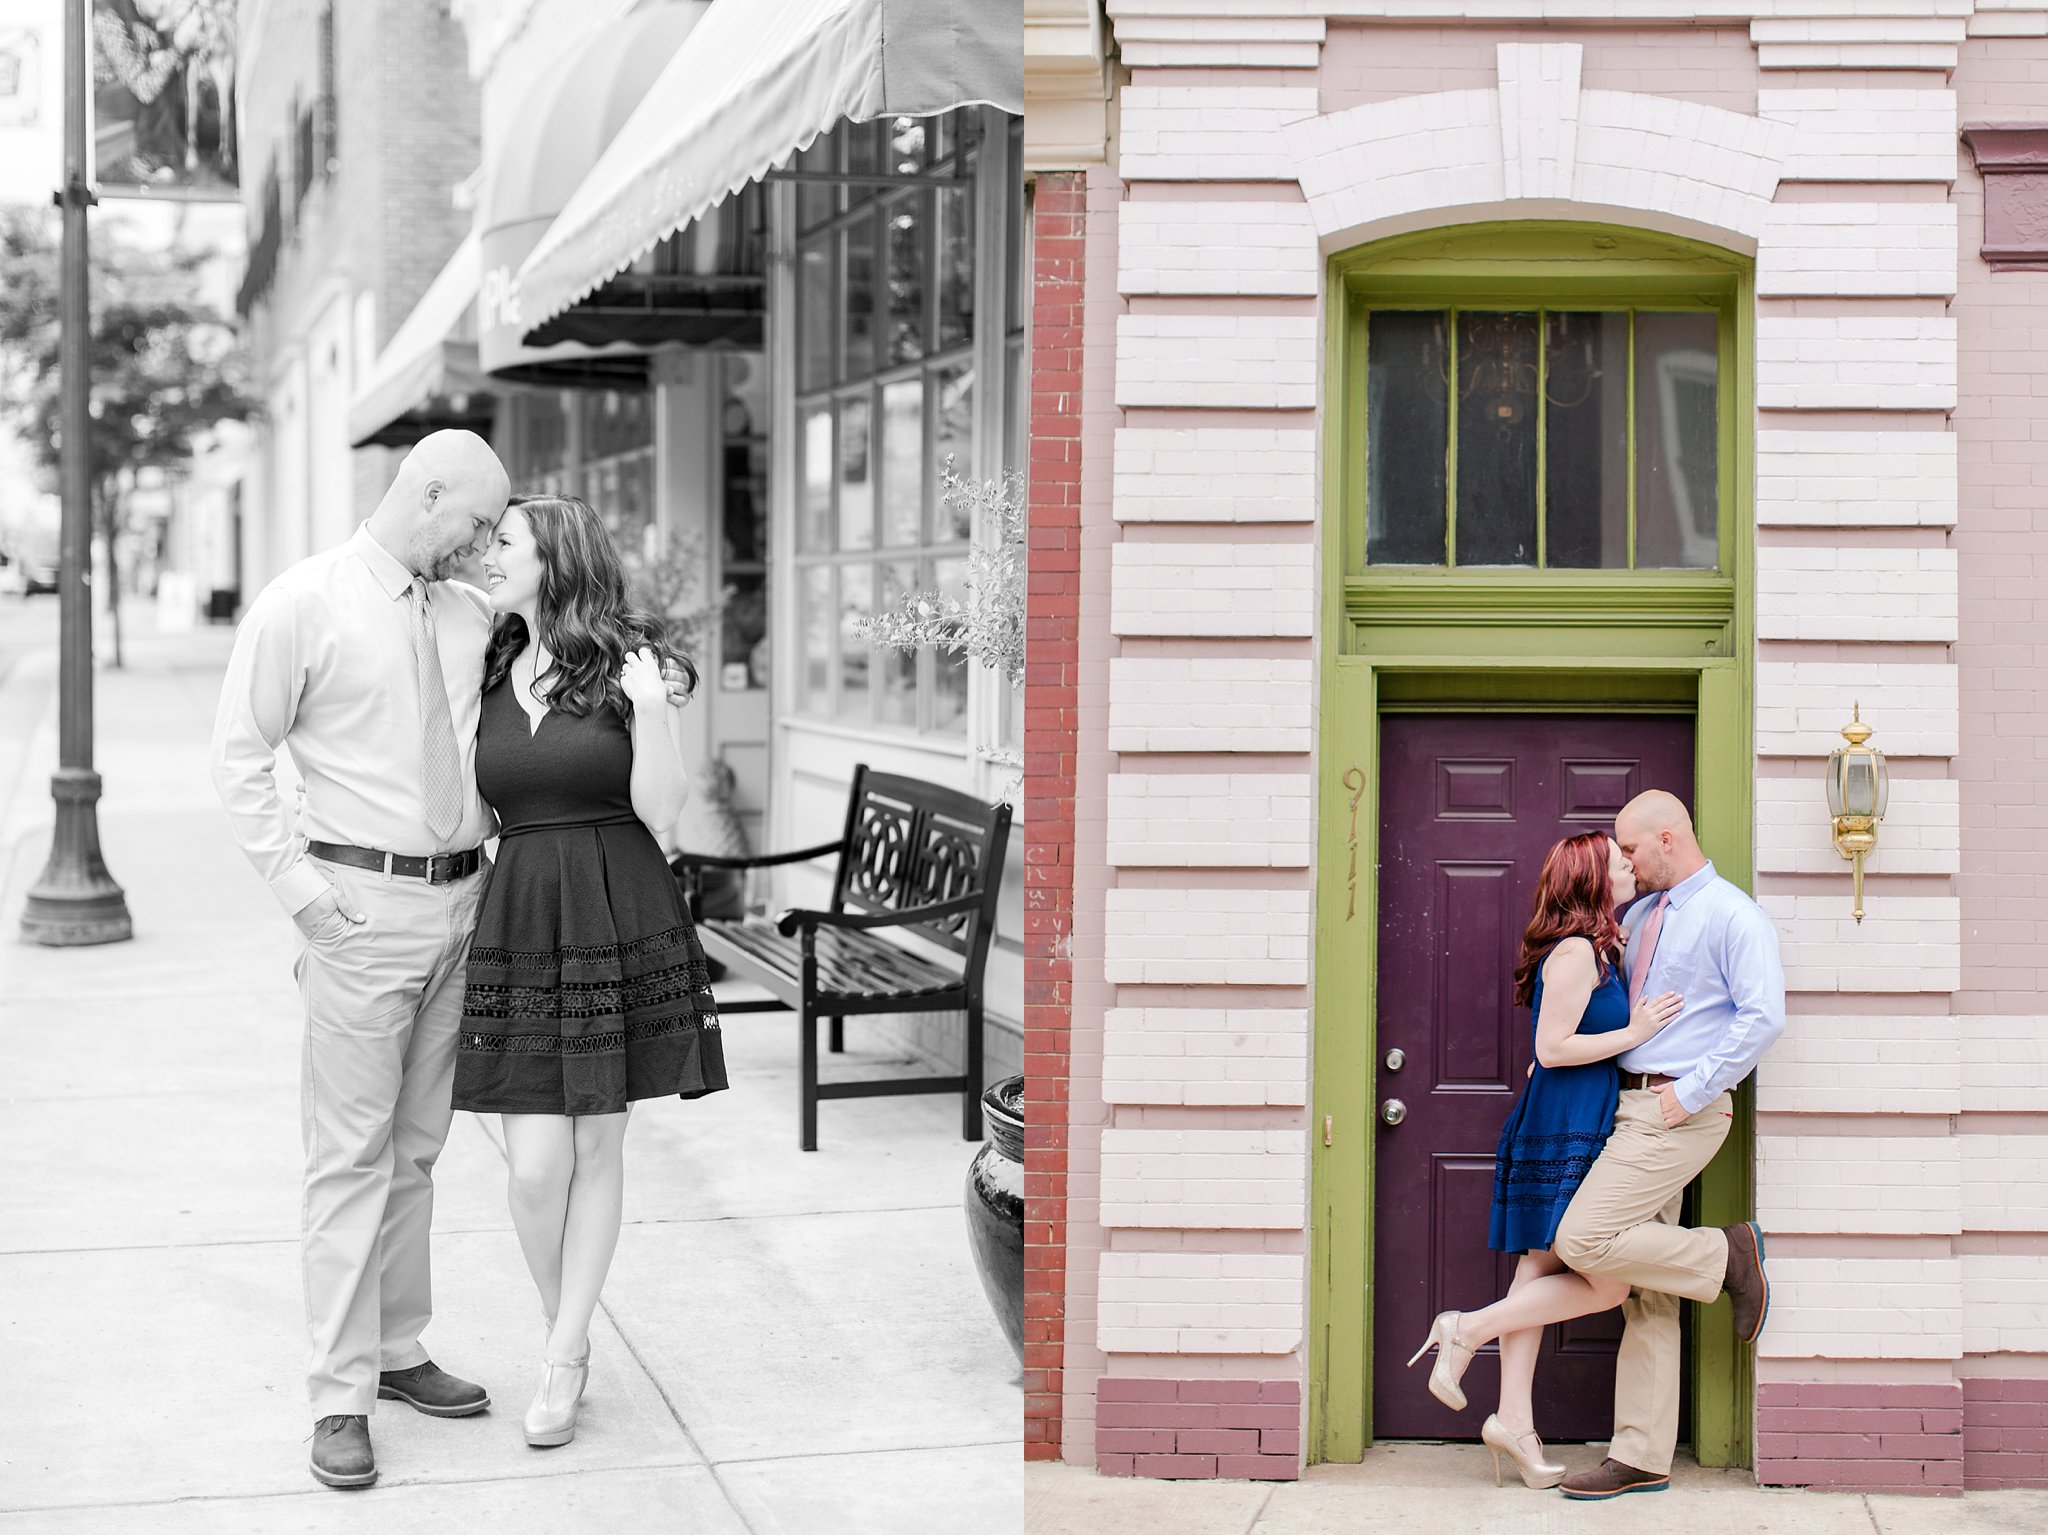 Old Town Manassas Battlefield Engagement Photos Virginia Wedding Photographer Jessica & Jason-60.jpg